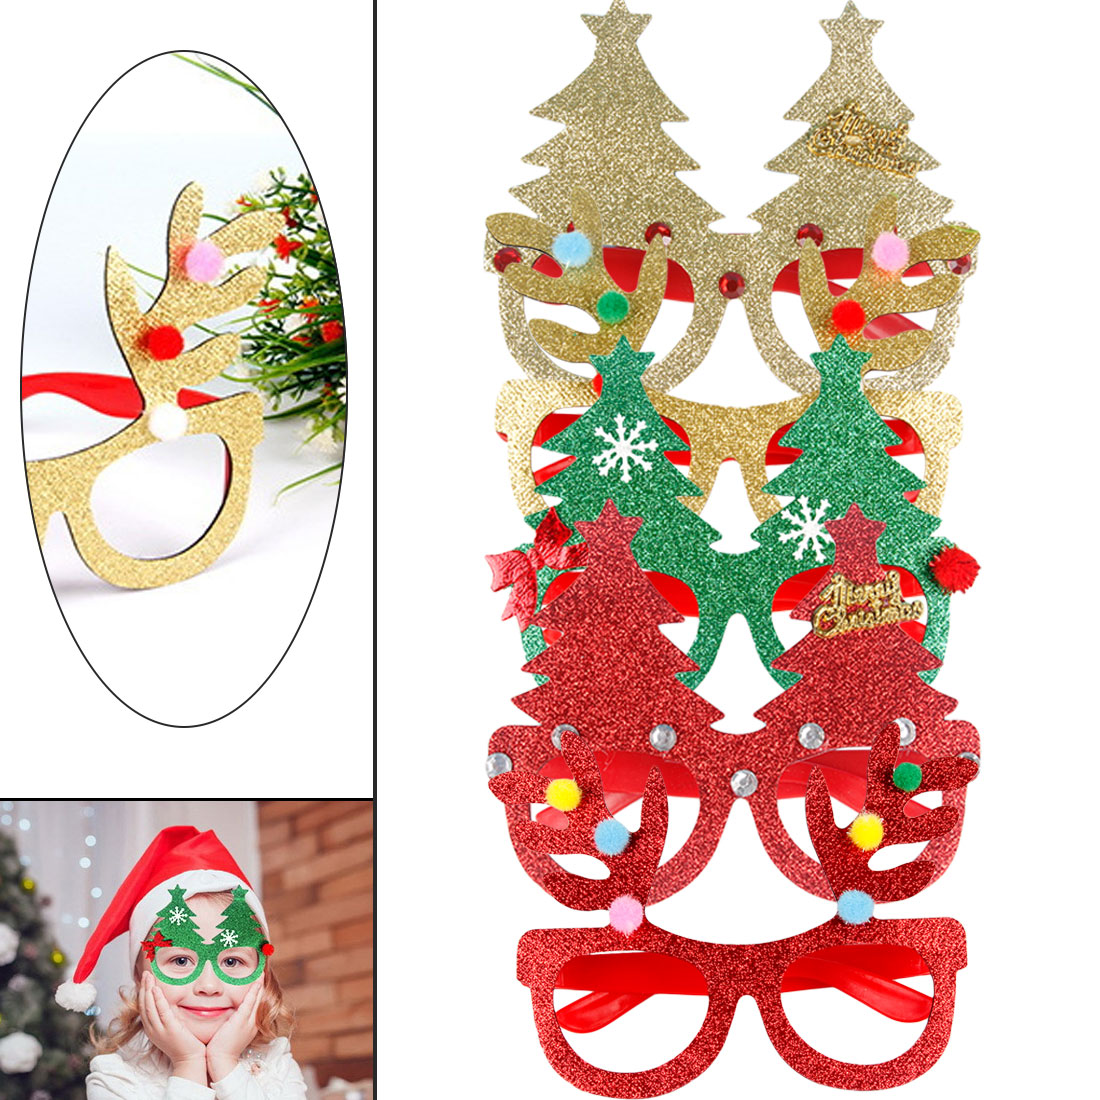 Devoted New Christmas Decoration Glasses Children Christmas Gifts Holiday Supplies Paper Led Party Creative Glasses High Safety Apparel Accessories